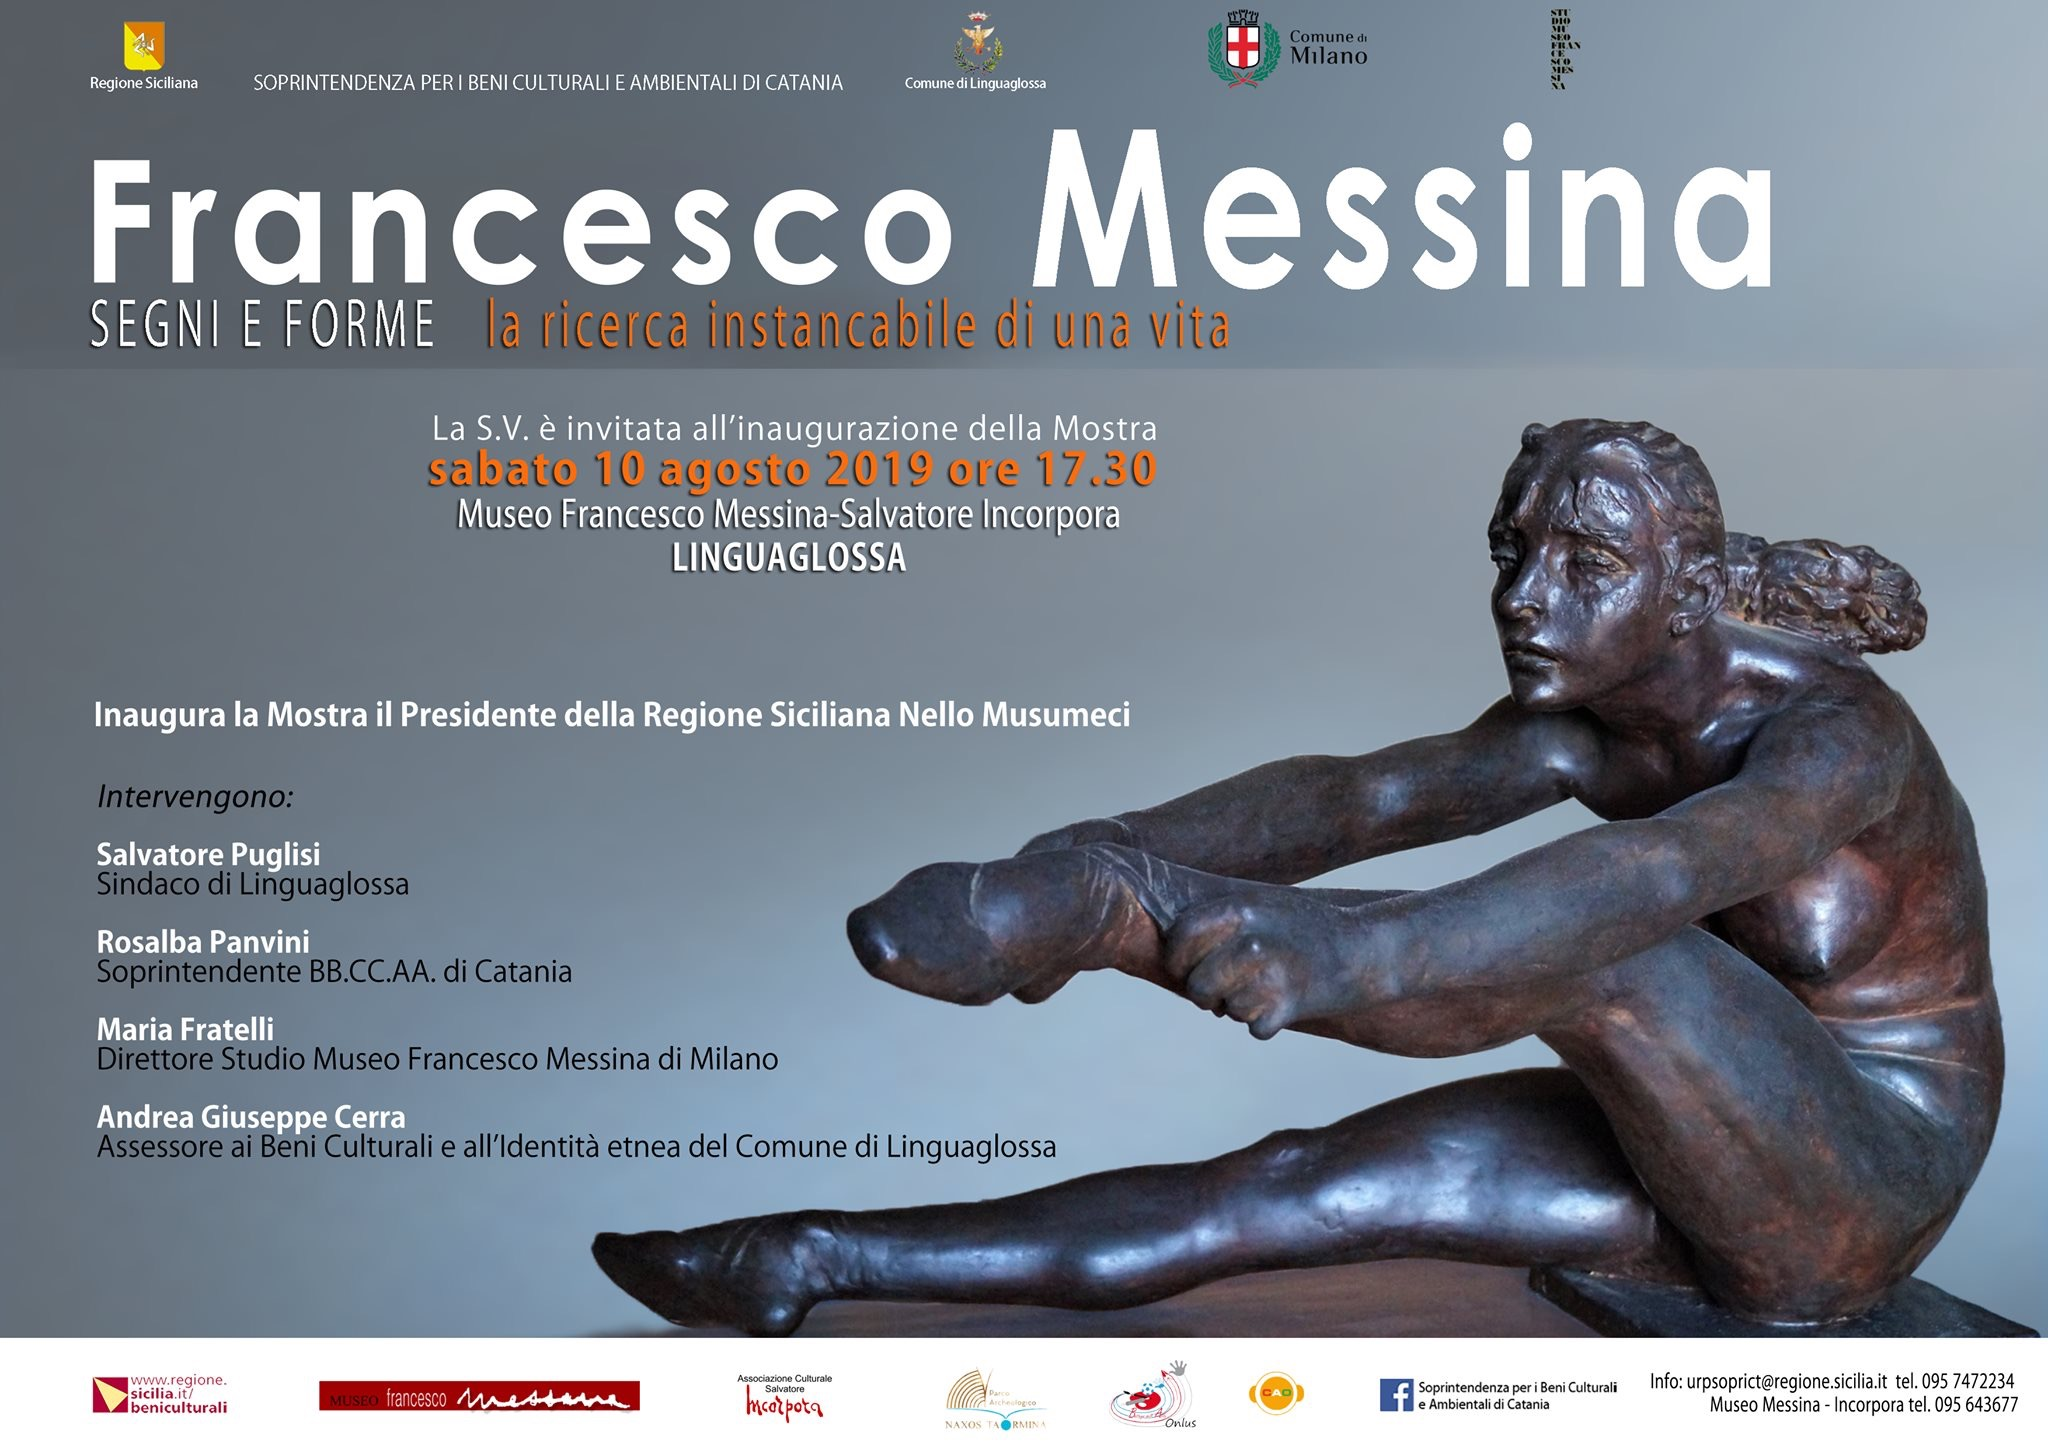 La mostra dedicata a Francesco Messina a Linguaglossa